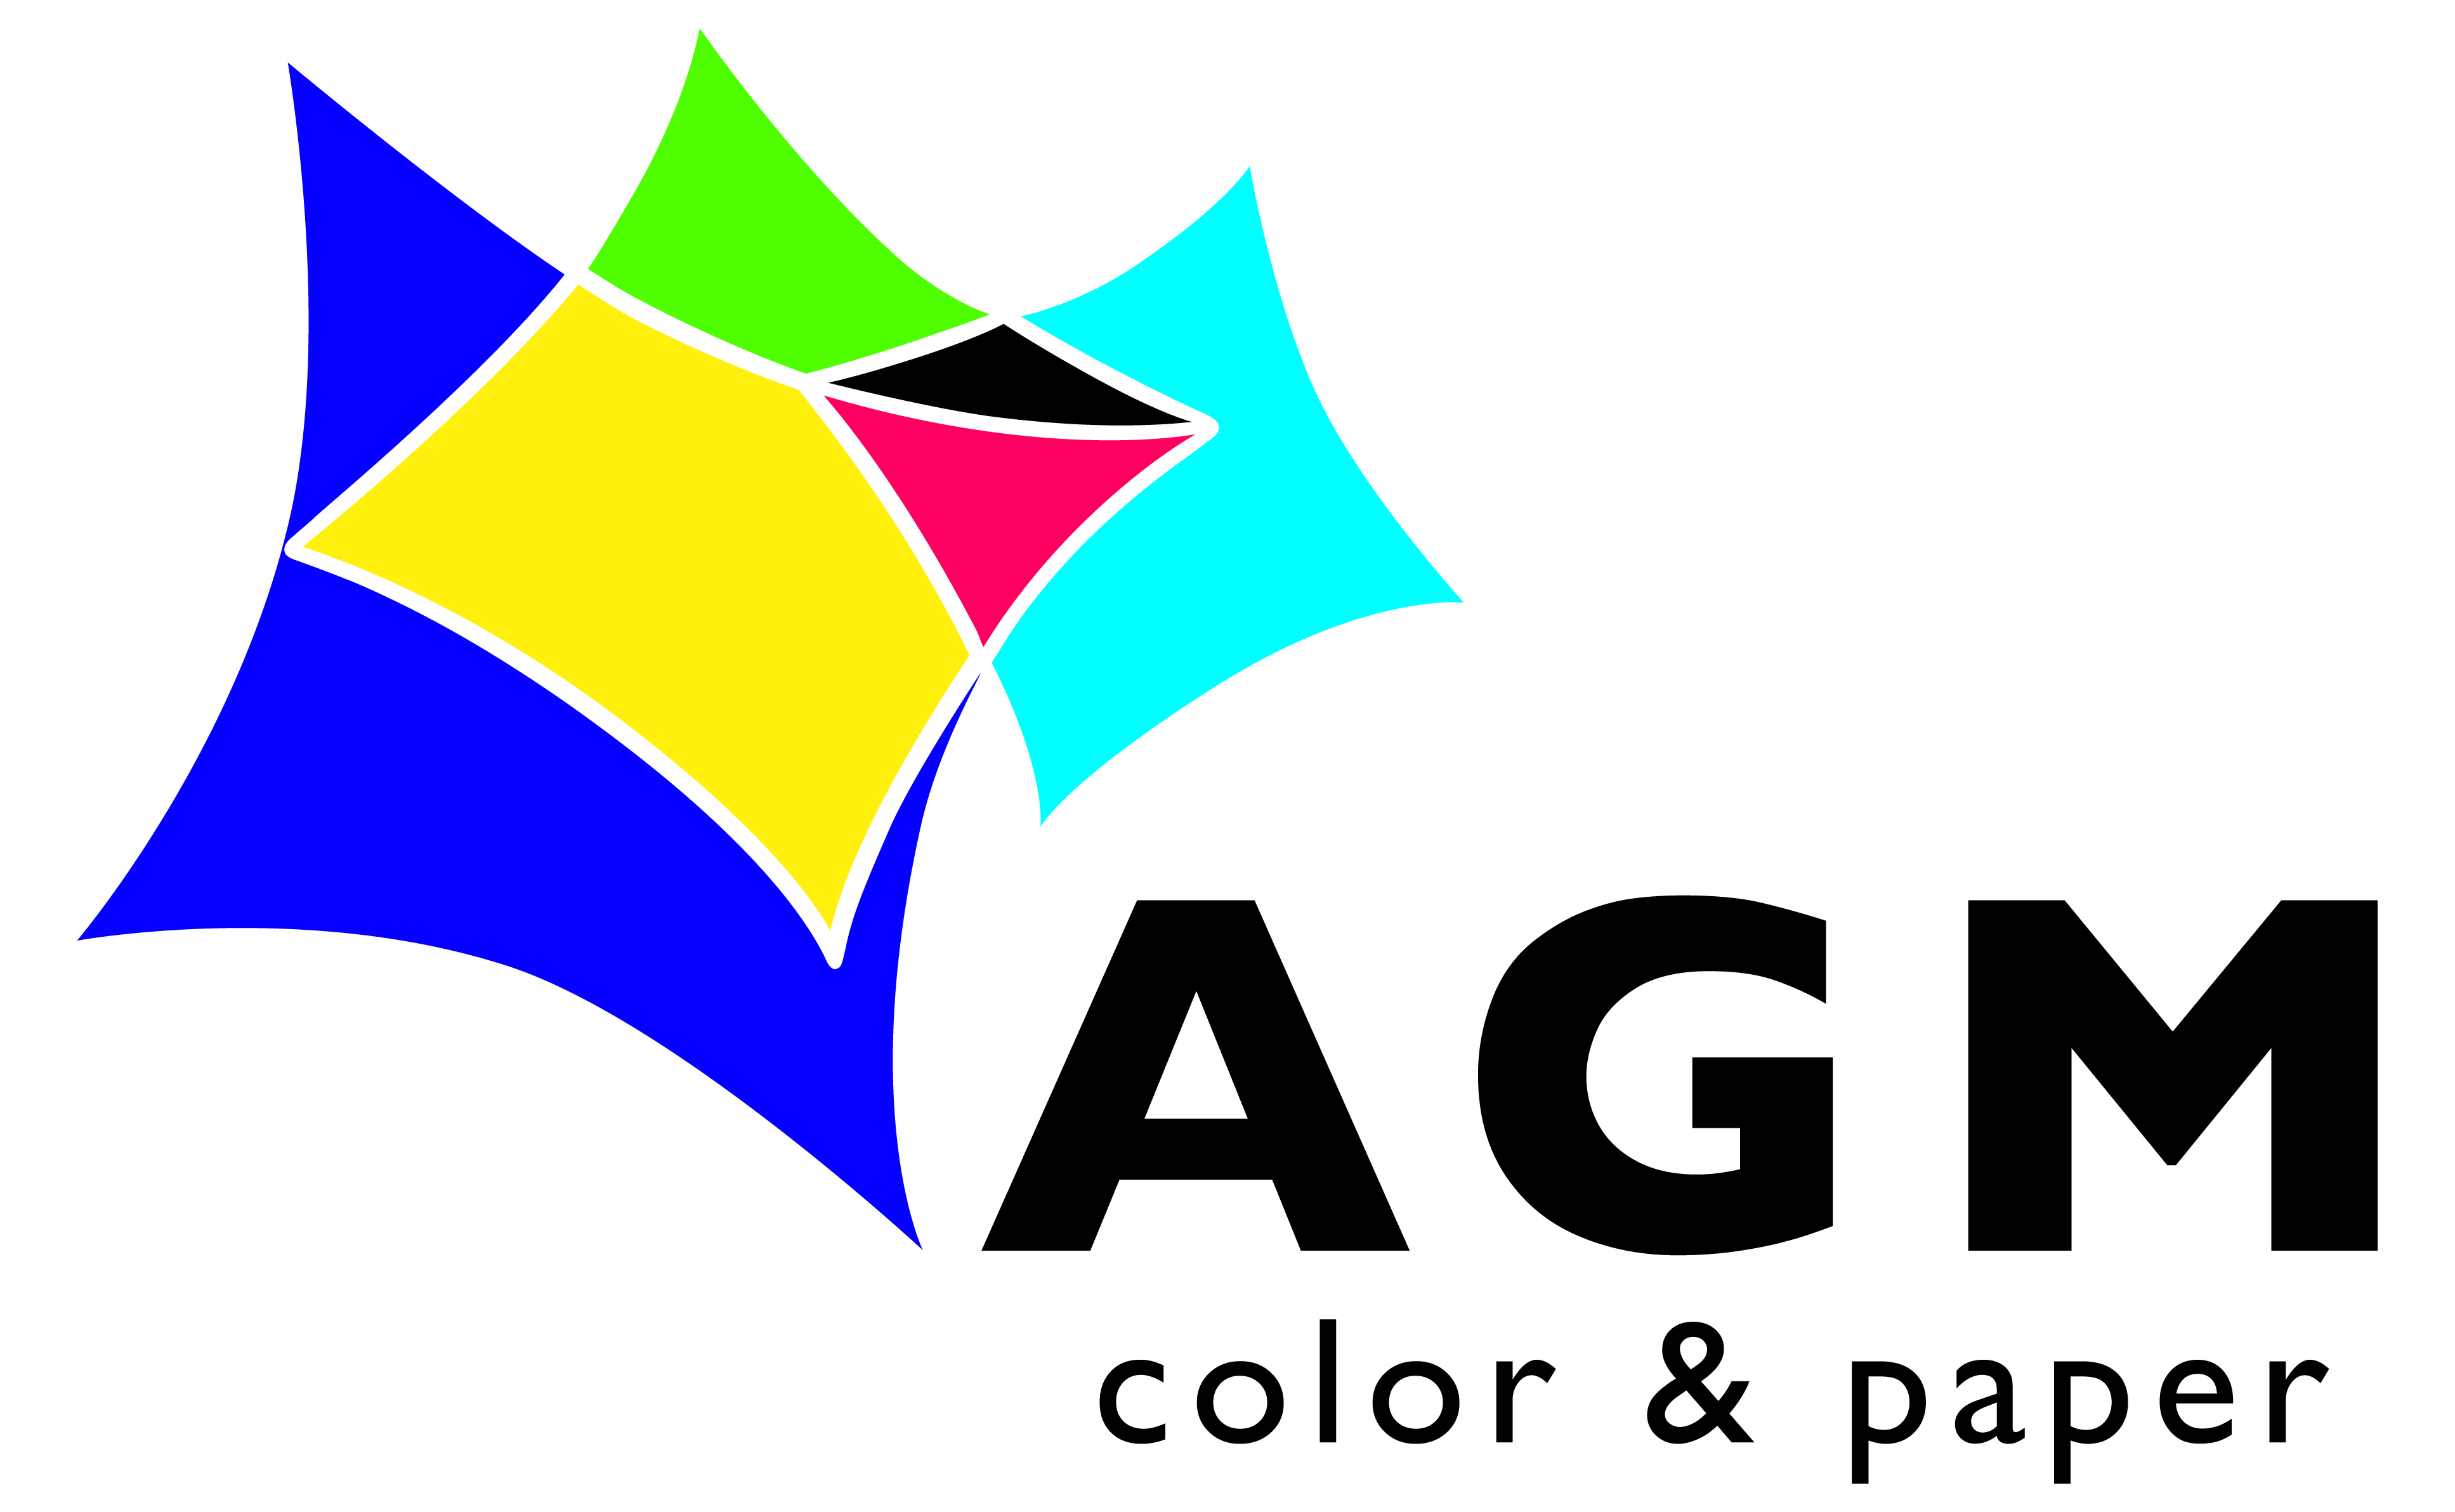 AGM COLOR & PAPER